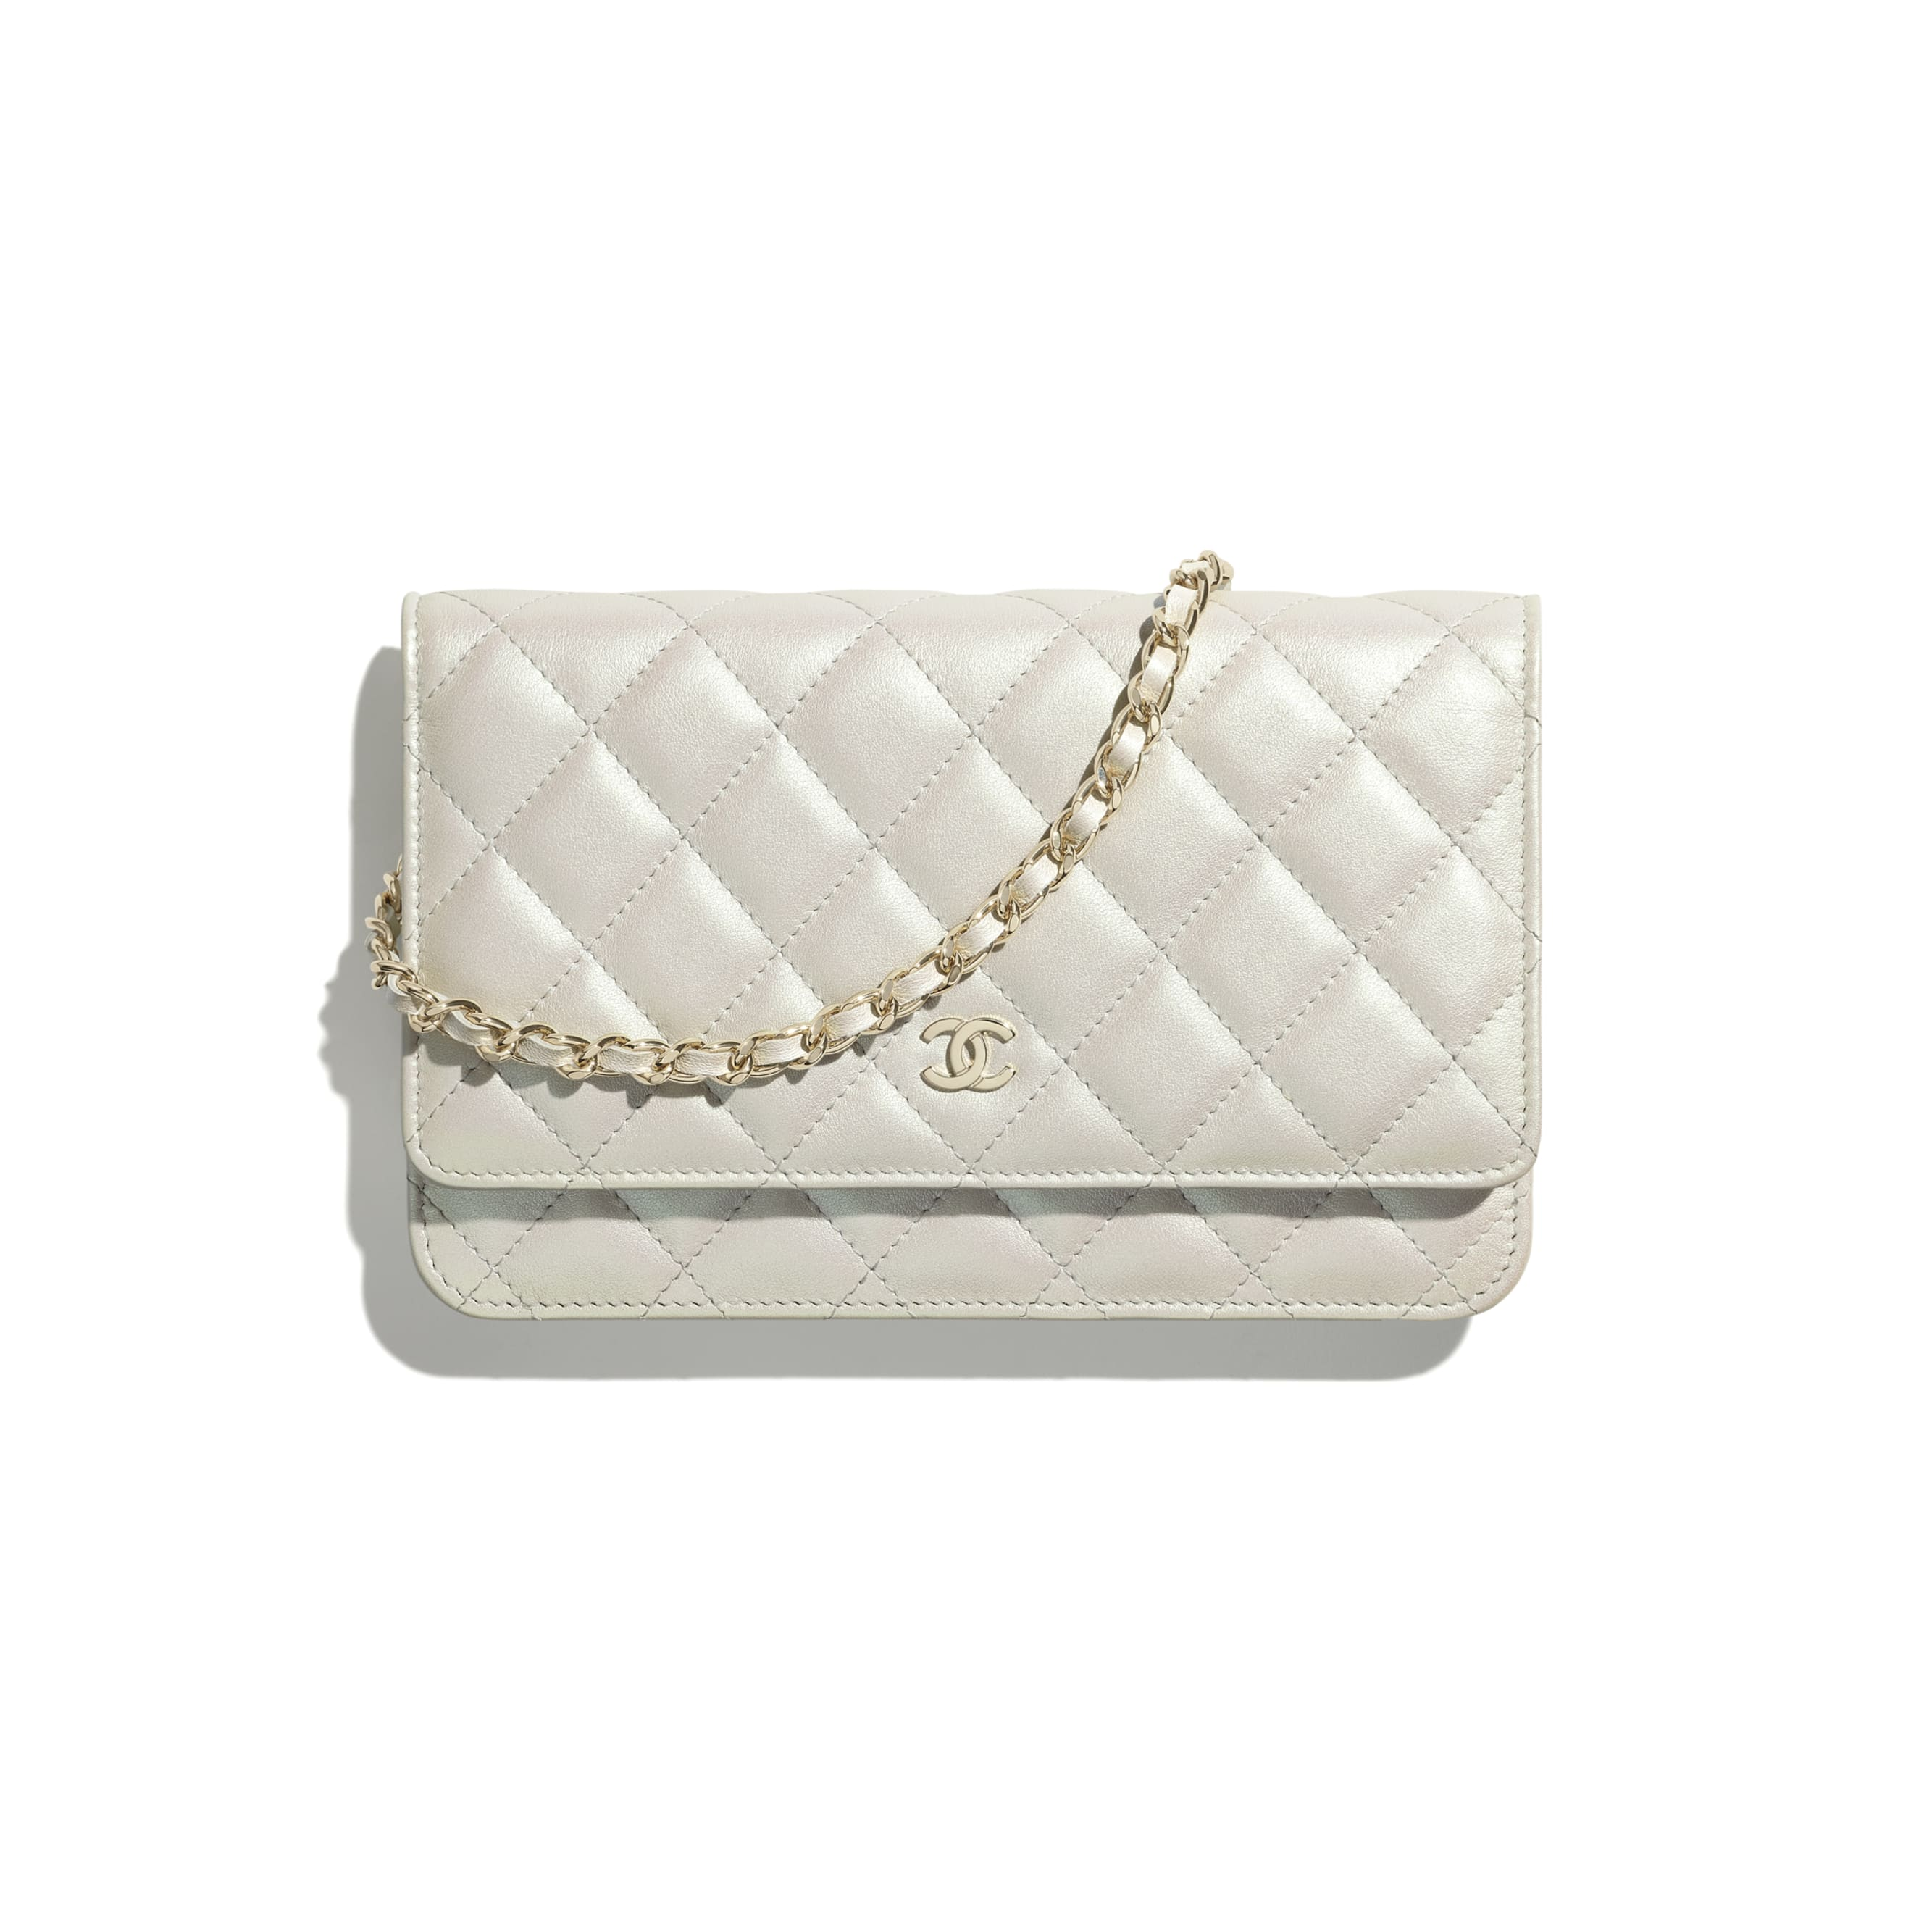 Classic Wallet On Chain - White - Iridescent Calfskin & Gold-Tone Metal - CHANEL - Default view - see standard sized version